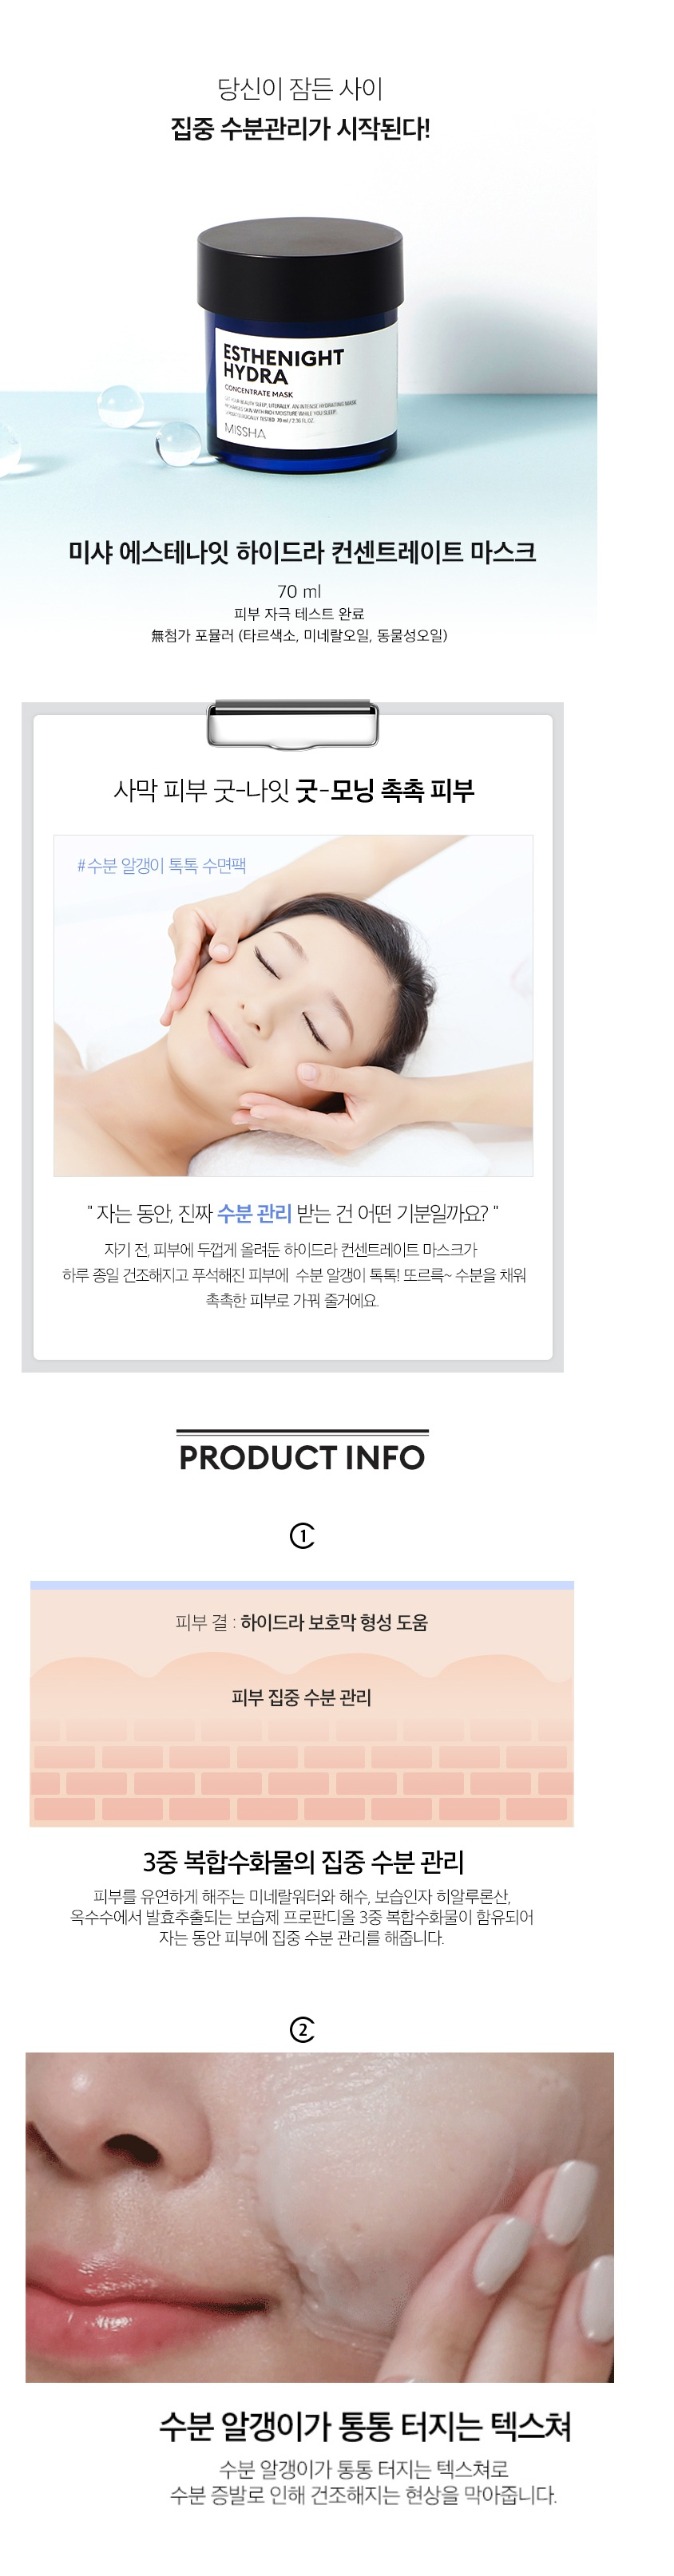 Missha Esthenight Hydra Concentrate Mask korean skincare product online shop malaysia china india1